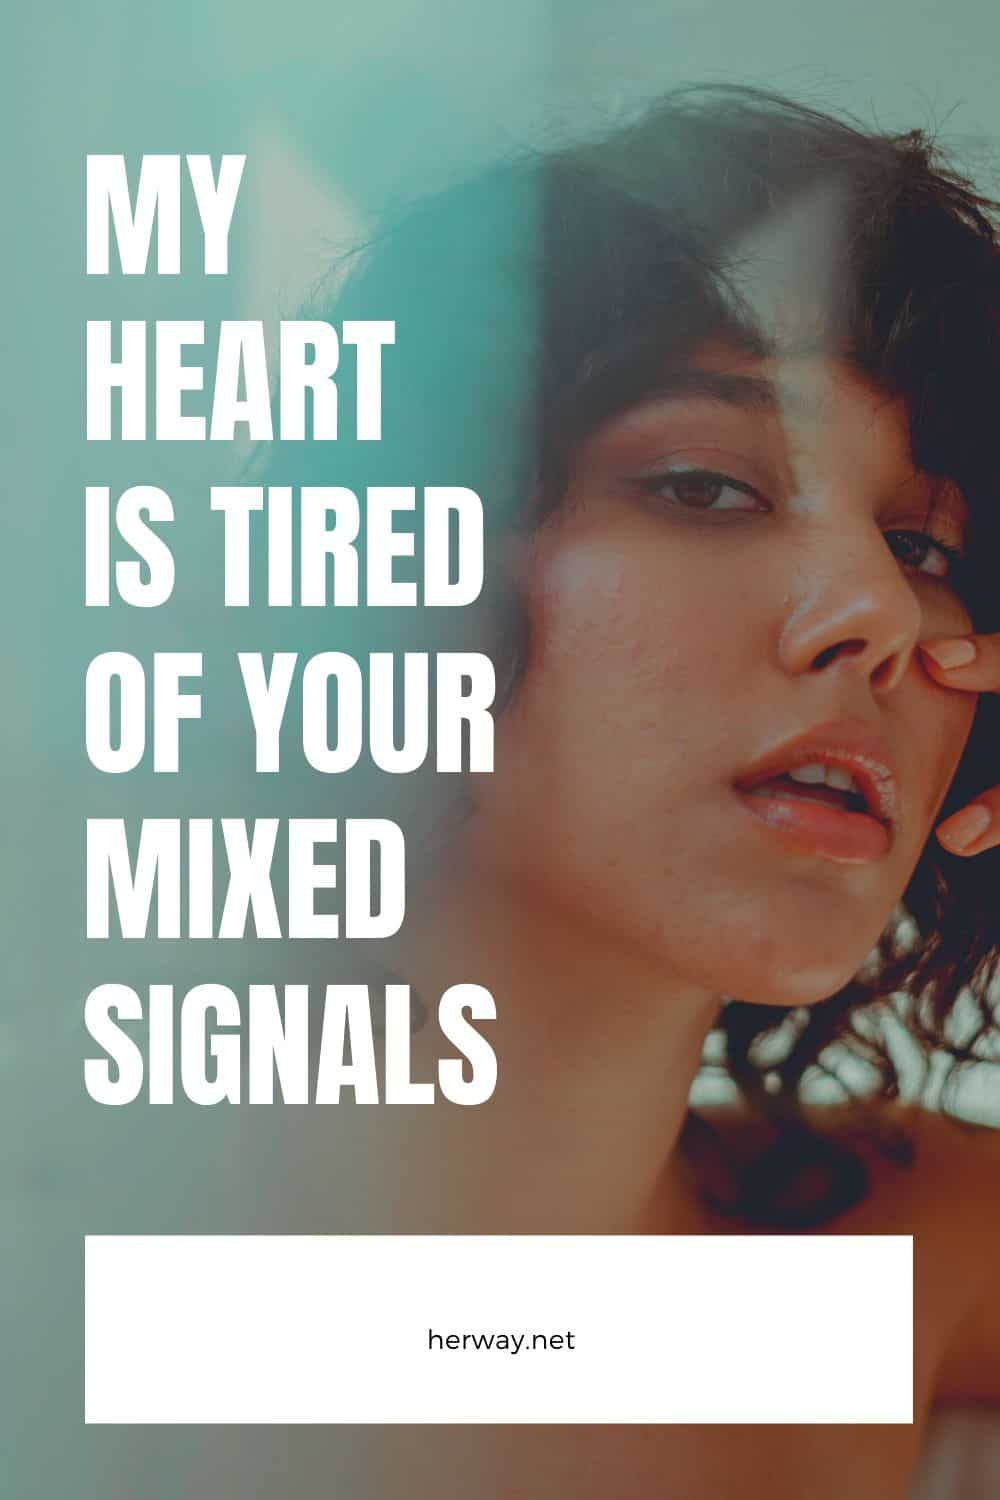 My Heart Is Tired From Your Mixed Signals